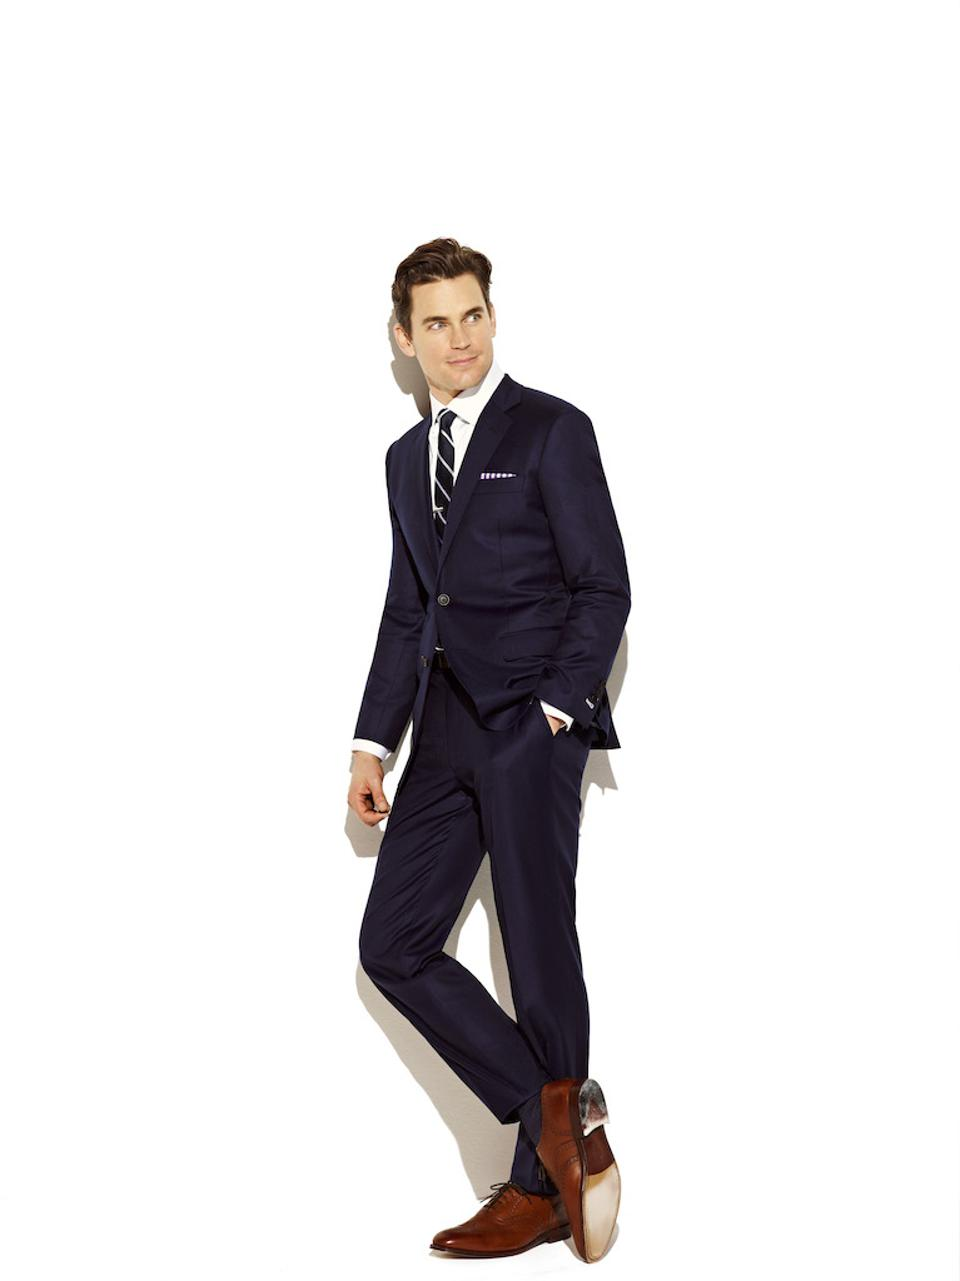 Alton Lane's Bespoke Menswear, With 3D Fitted Technology